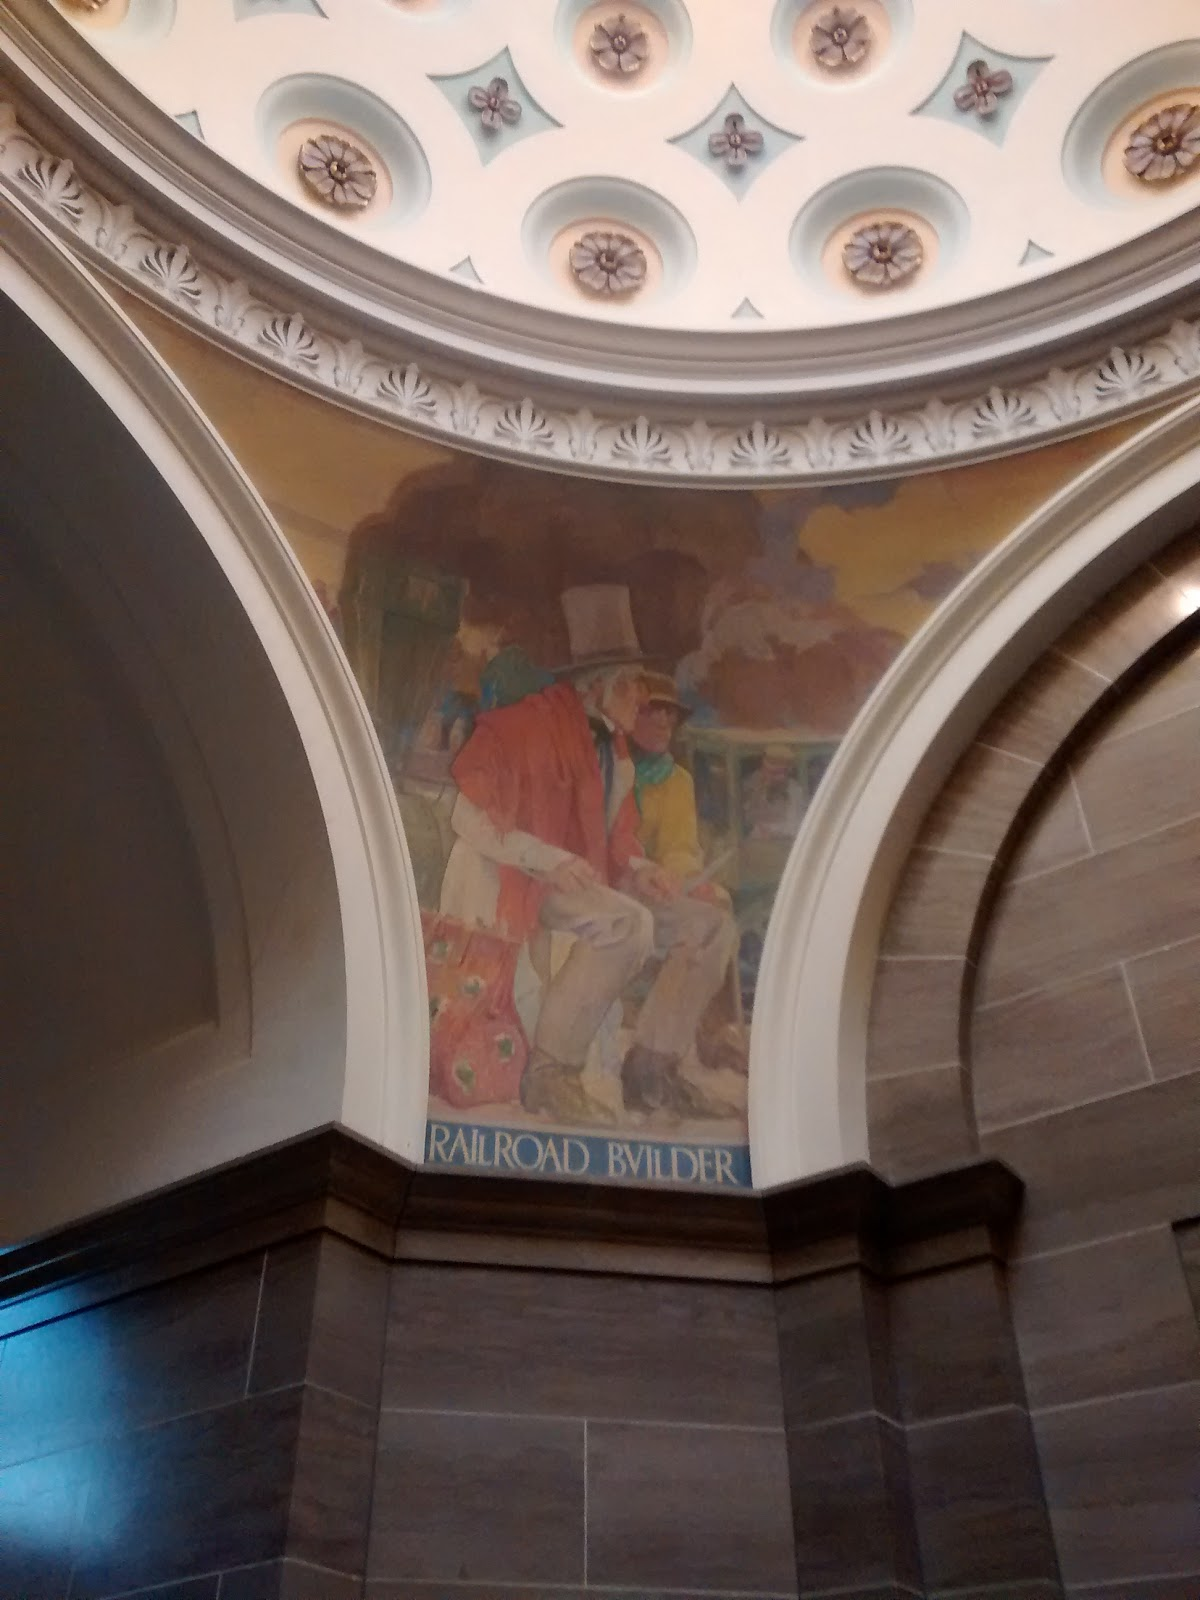 Railroad Builder Mural at Jefferson City Capital Building